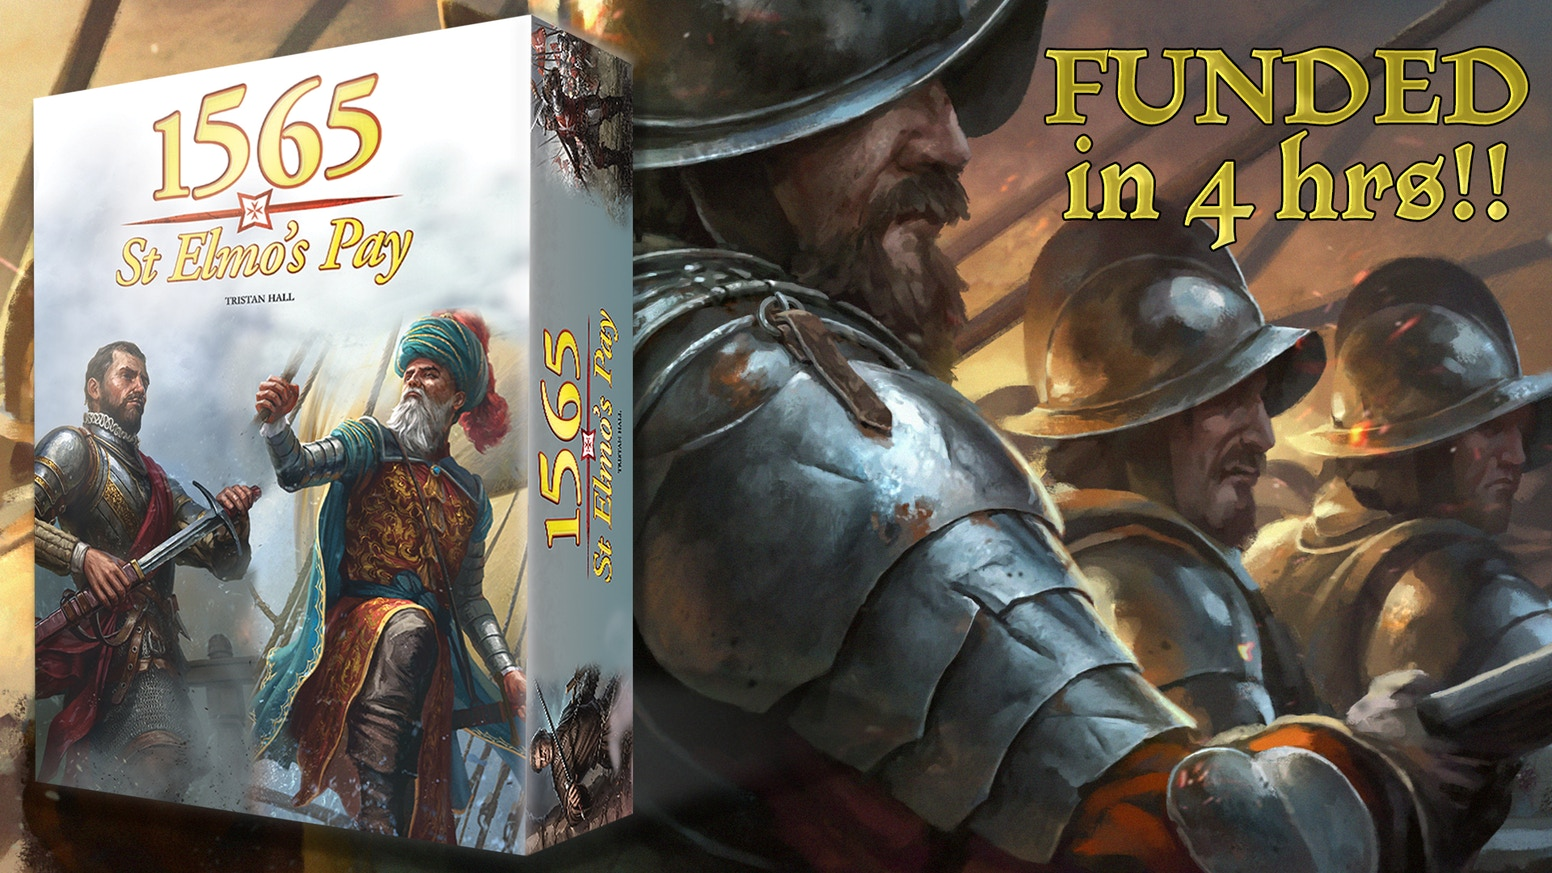 Relive the 1565 Siege of Malta 'the Greatest Siege in History' in this gorgeous 1-2 player, 30-40 minute, non-collectable card game